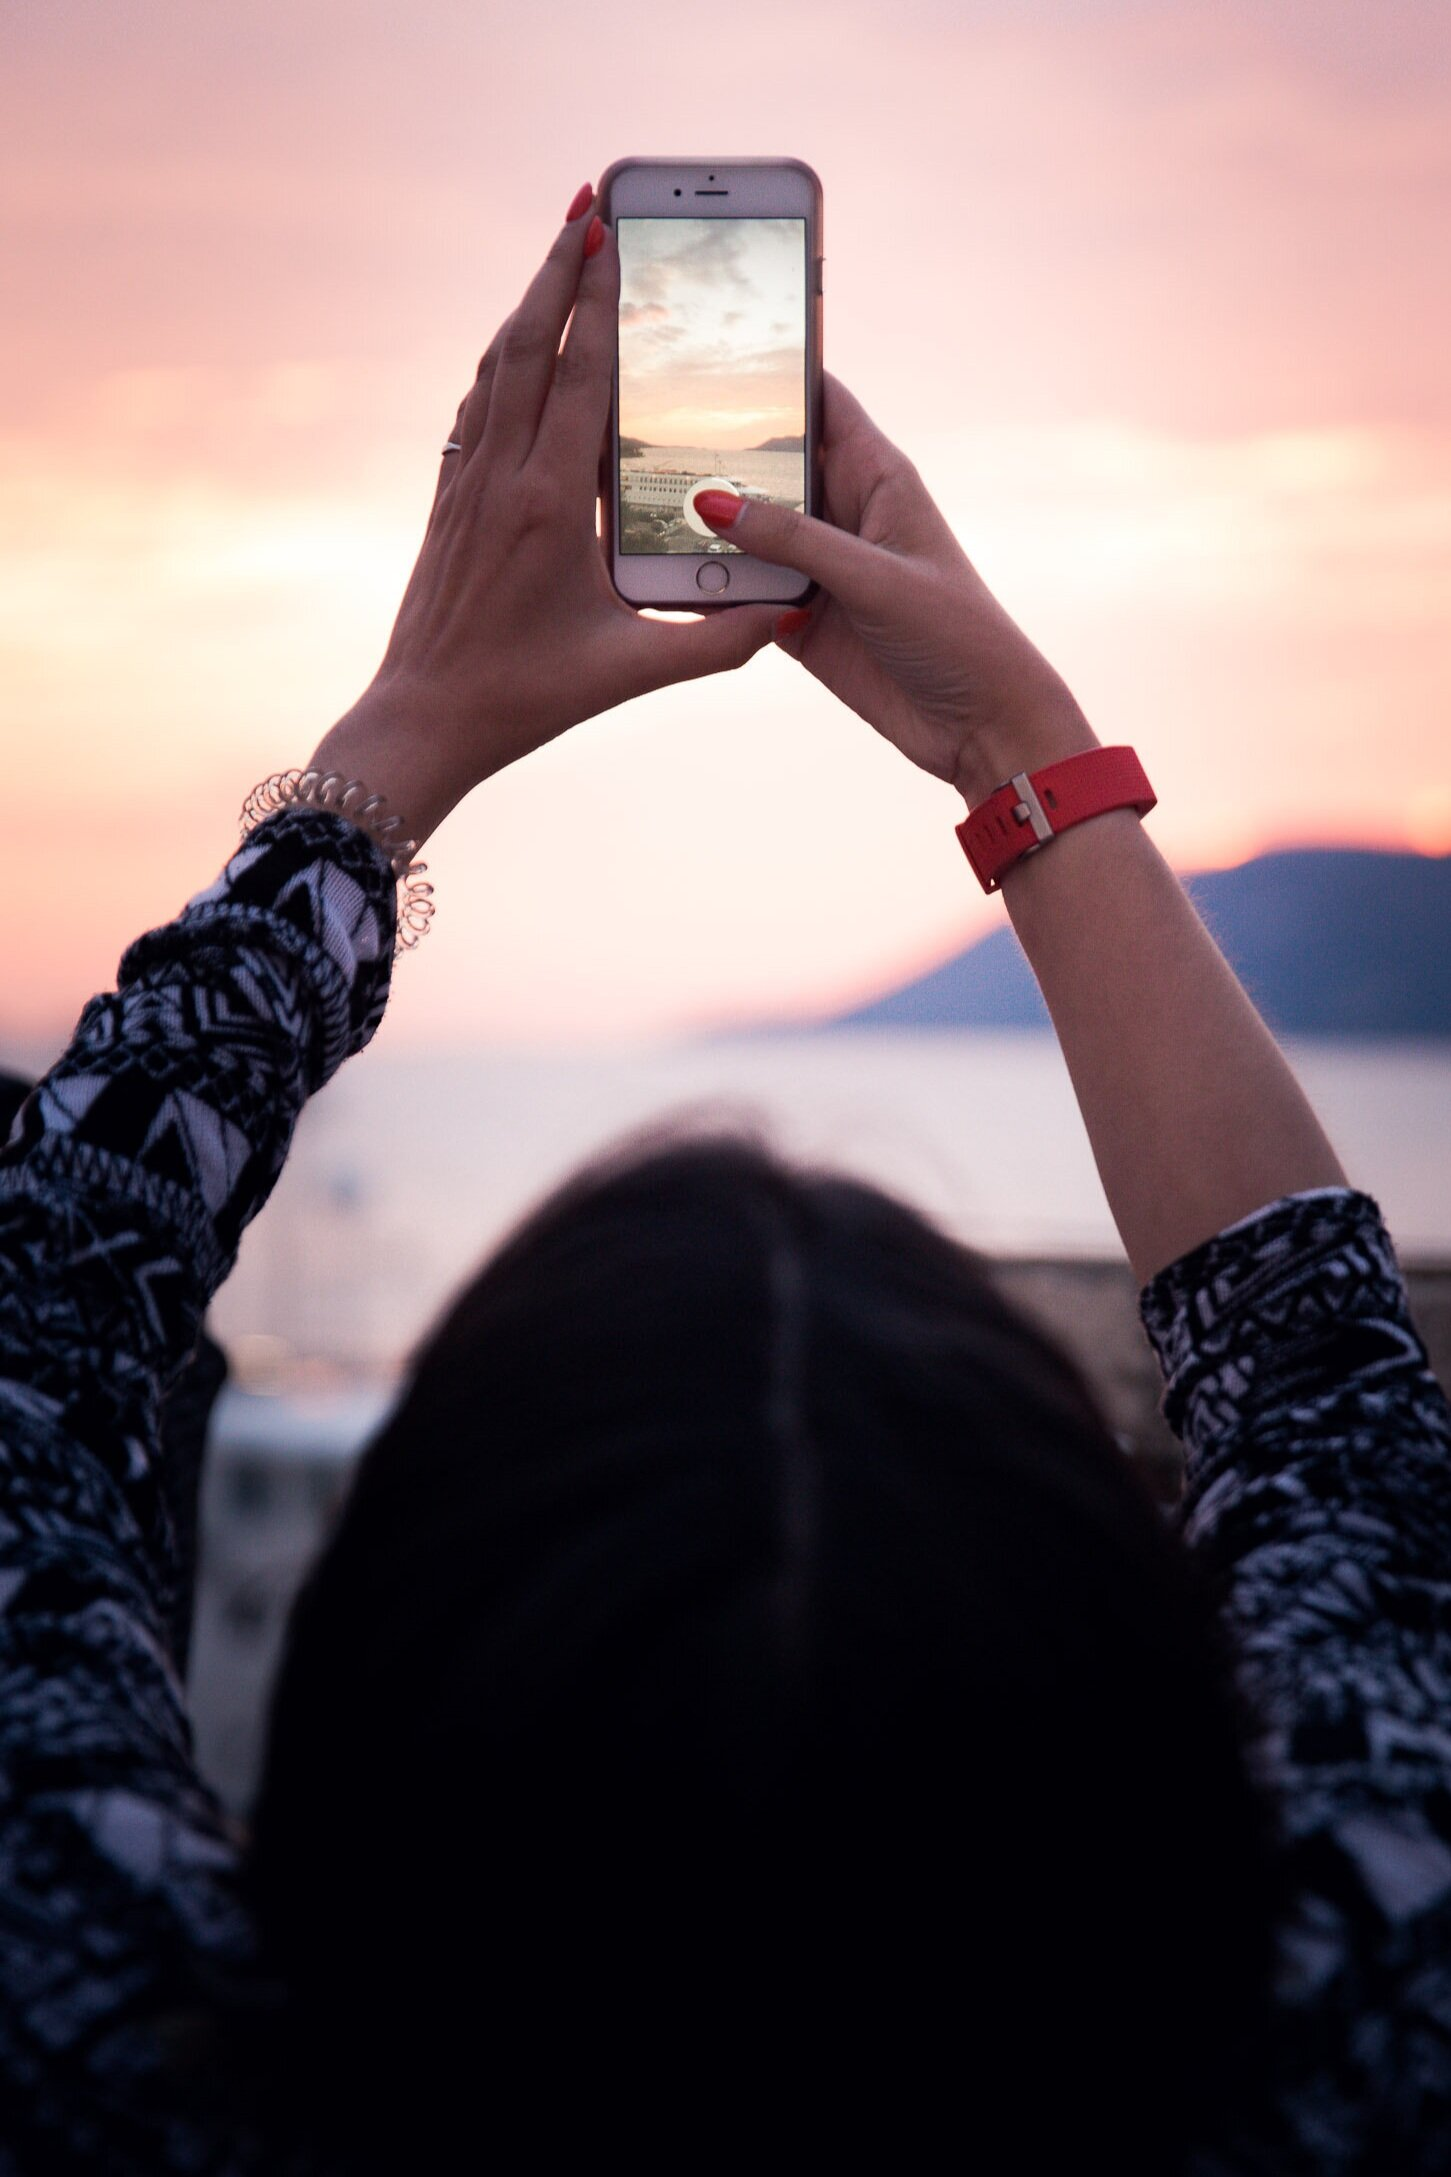 A young woman holds her mobile phone up to snap a photo of a sunset on the Mediterranean sea.